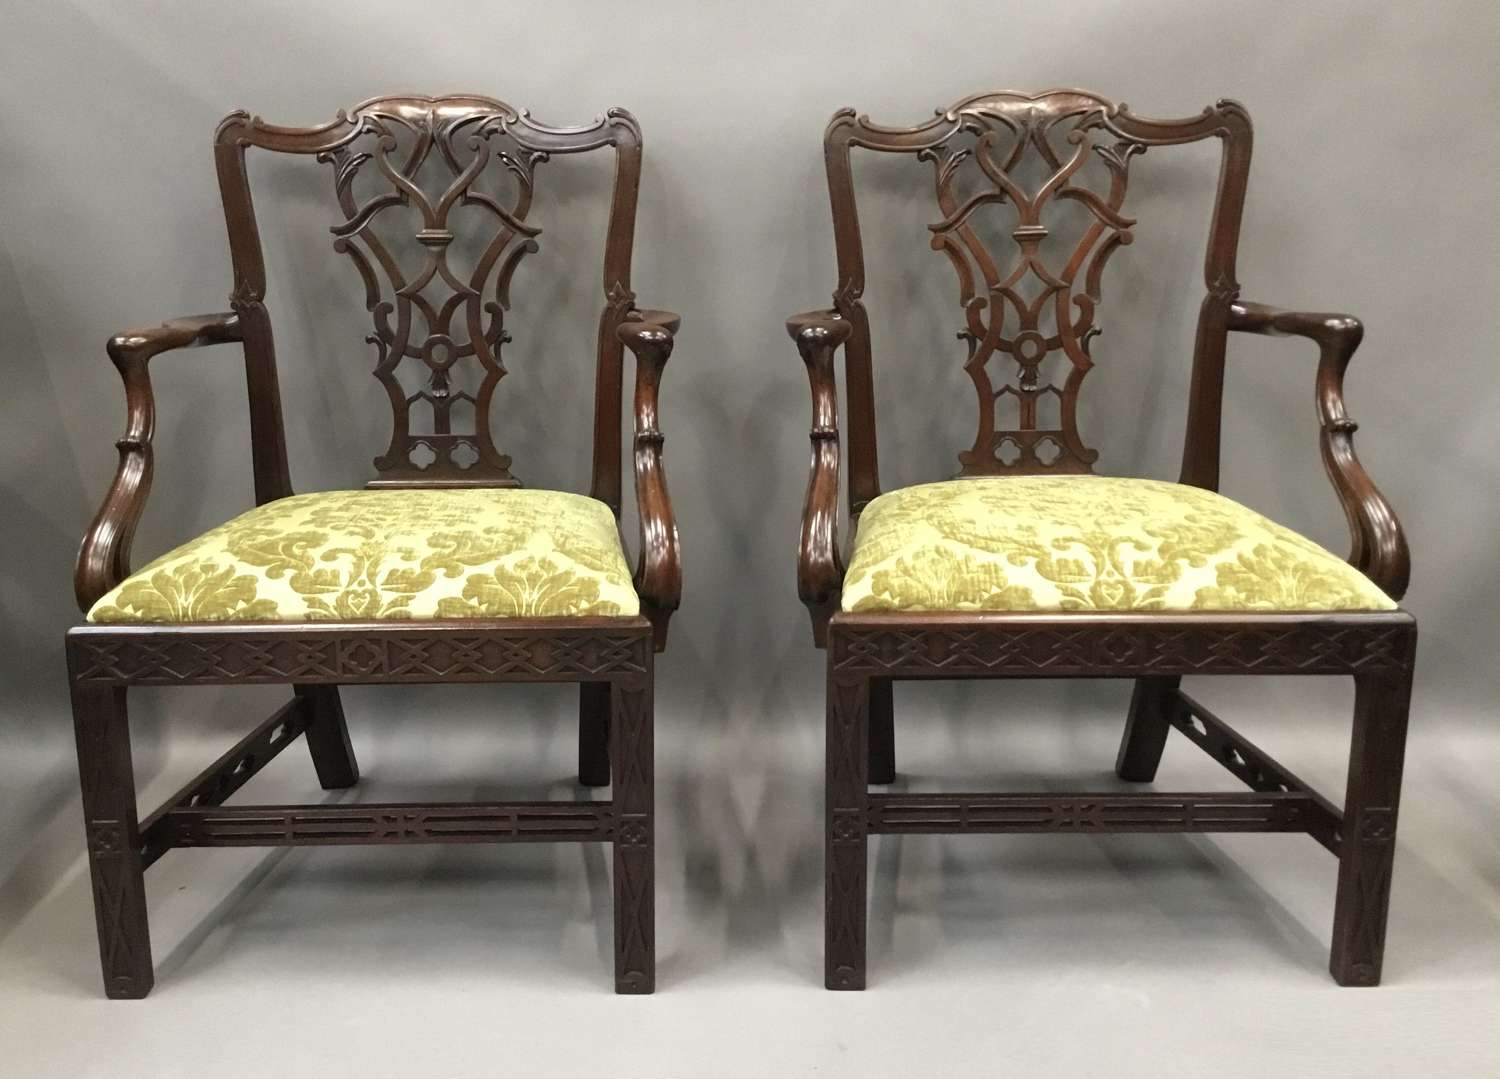 C19th pair of carved mahogany open armchairs in the Chippendale manner